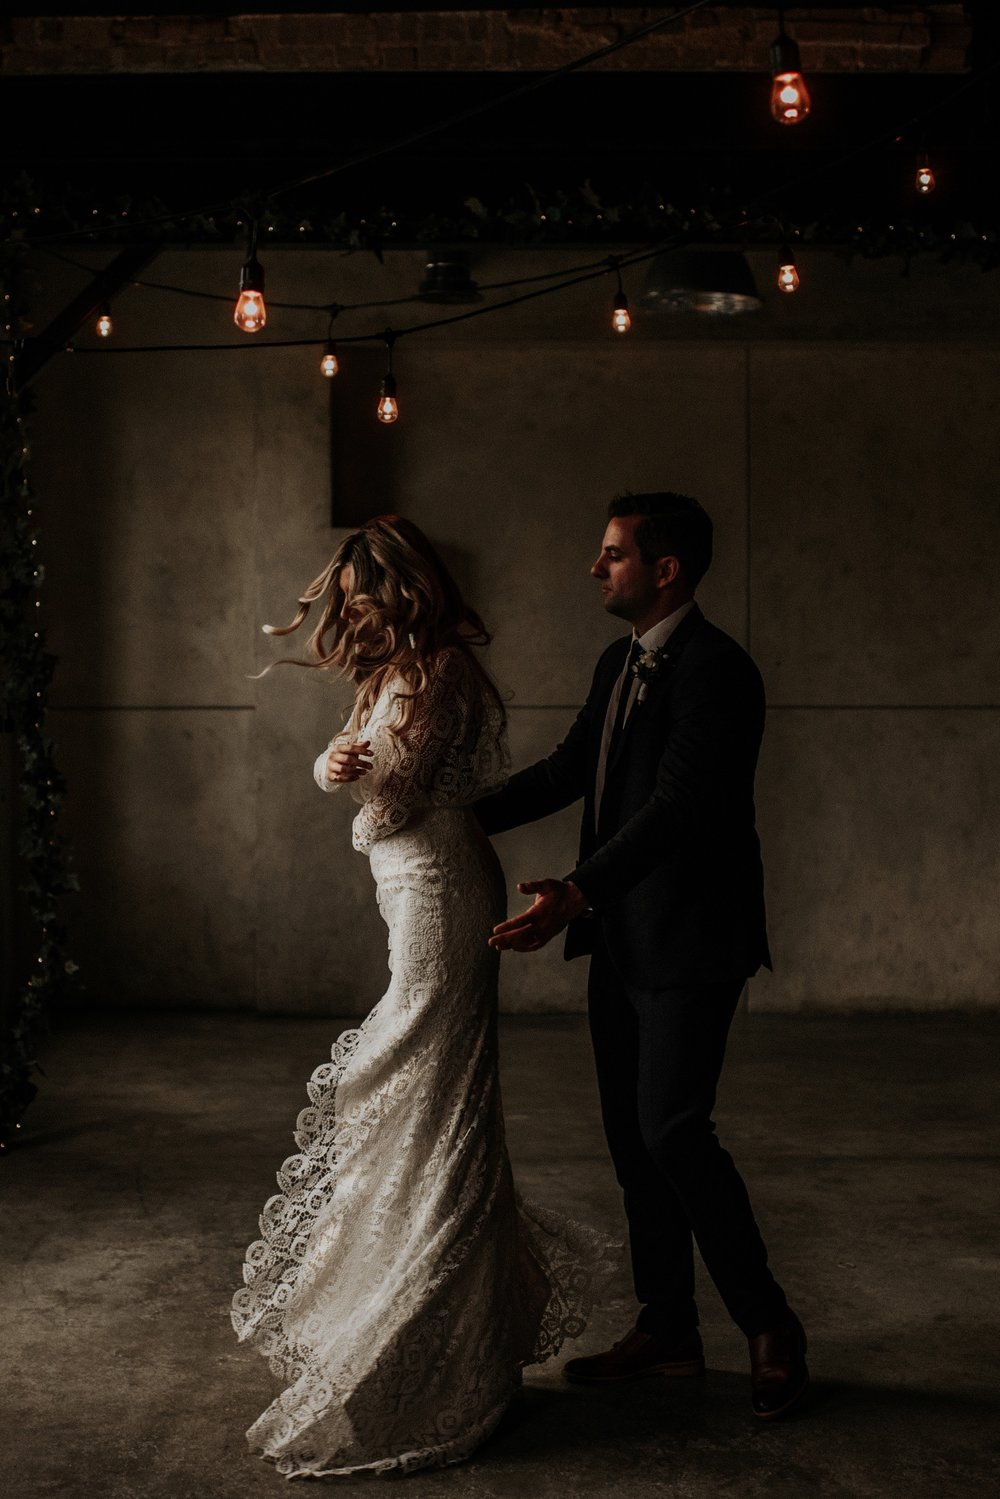 Wedding and Elopement Photography_Karly Ford Photo 30.jpg